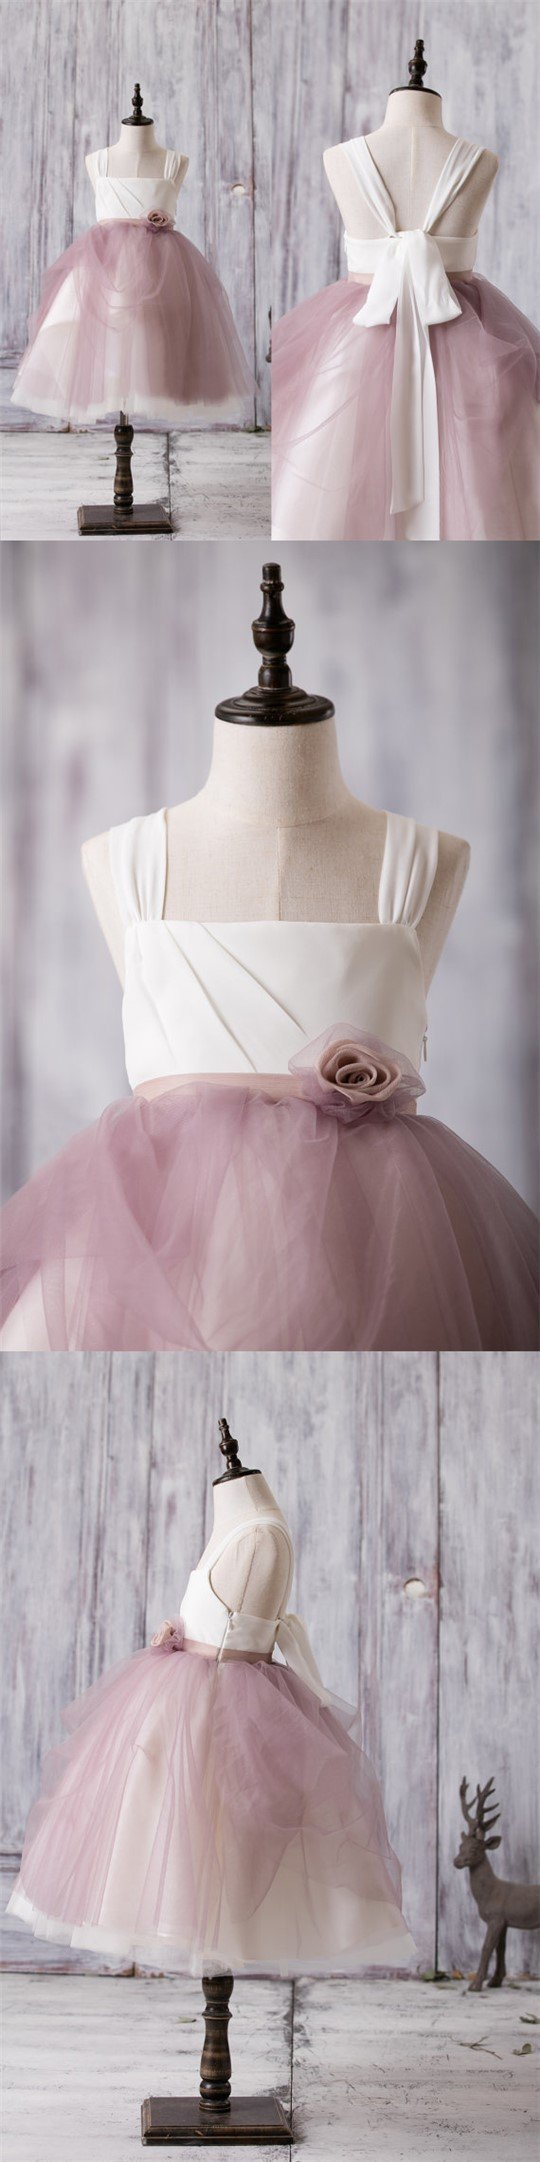 Newest Arrival Strap White Top Dusty Rose Tulle Cute Flower Girl